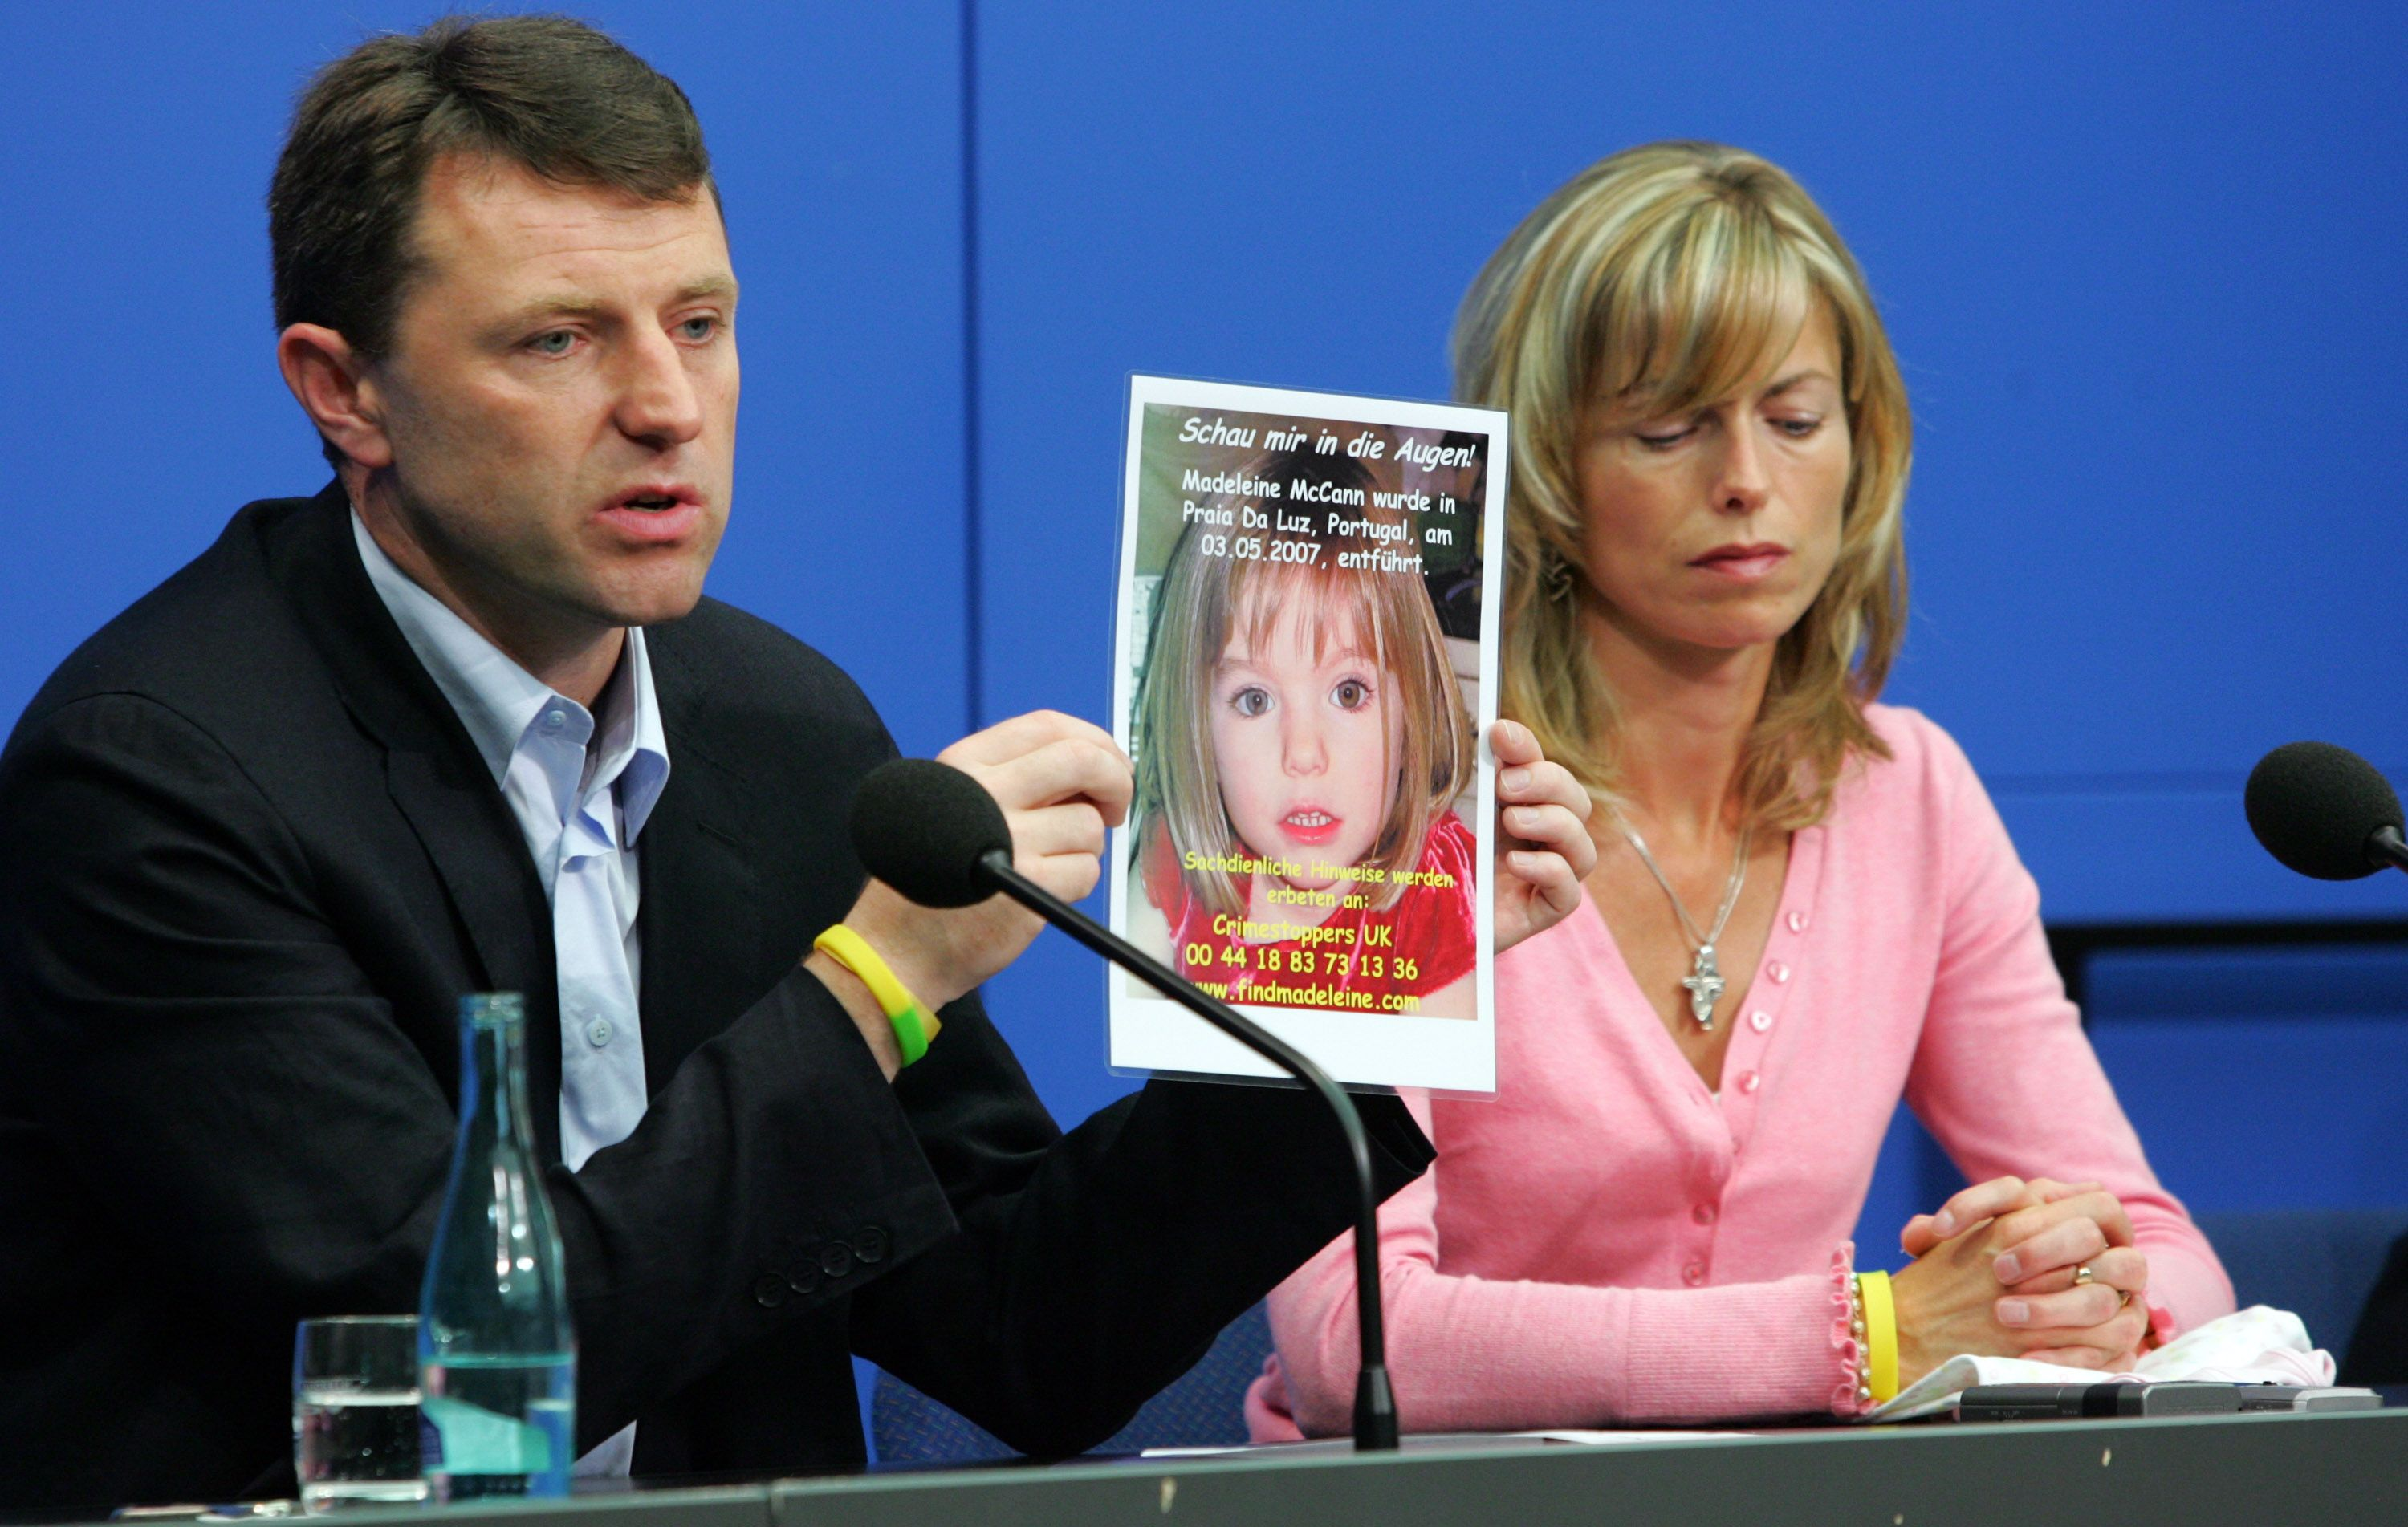 Madeleine McCann's Parent, Kate and Gerry McCann at Berlin holding a picture of Madeleine during a press conference on June 6, 2007 | Photo: Getty Images